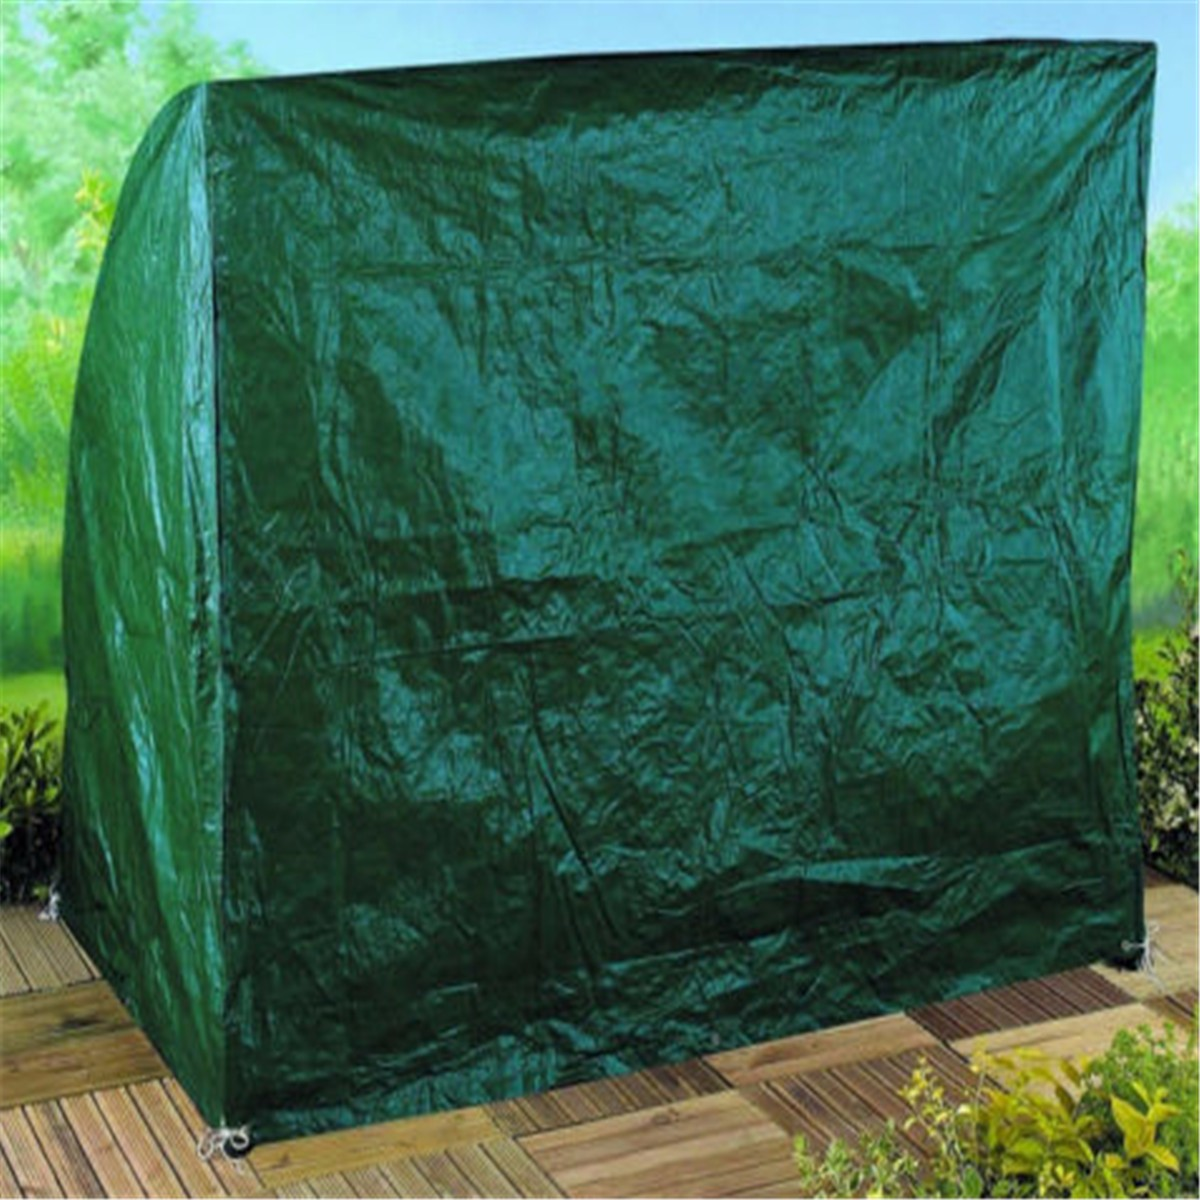 Swing Coverings 200x110x175cm Both Sides With A Zipper Waterproof Outdoor